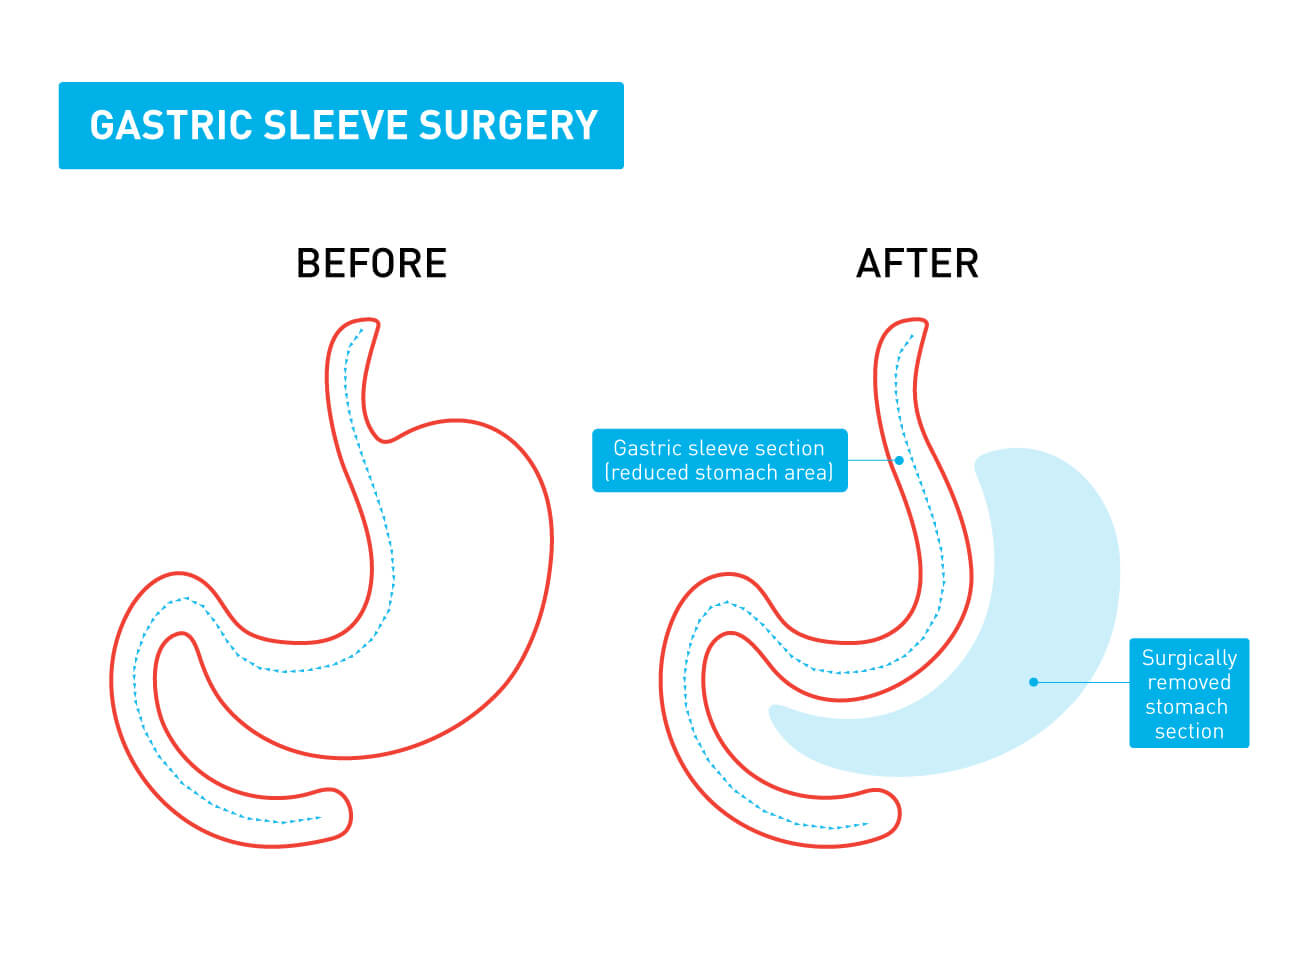 A graphic showing the difference between a stomach before and after gastric sleeve surgery